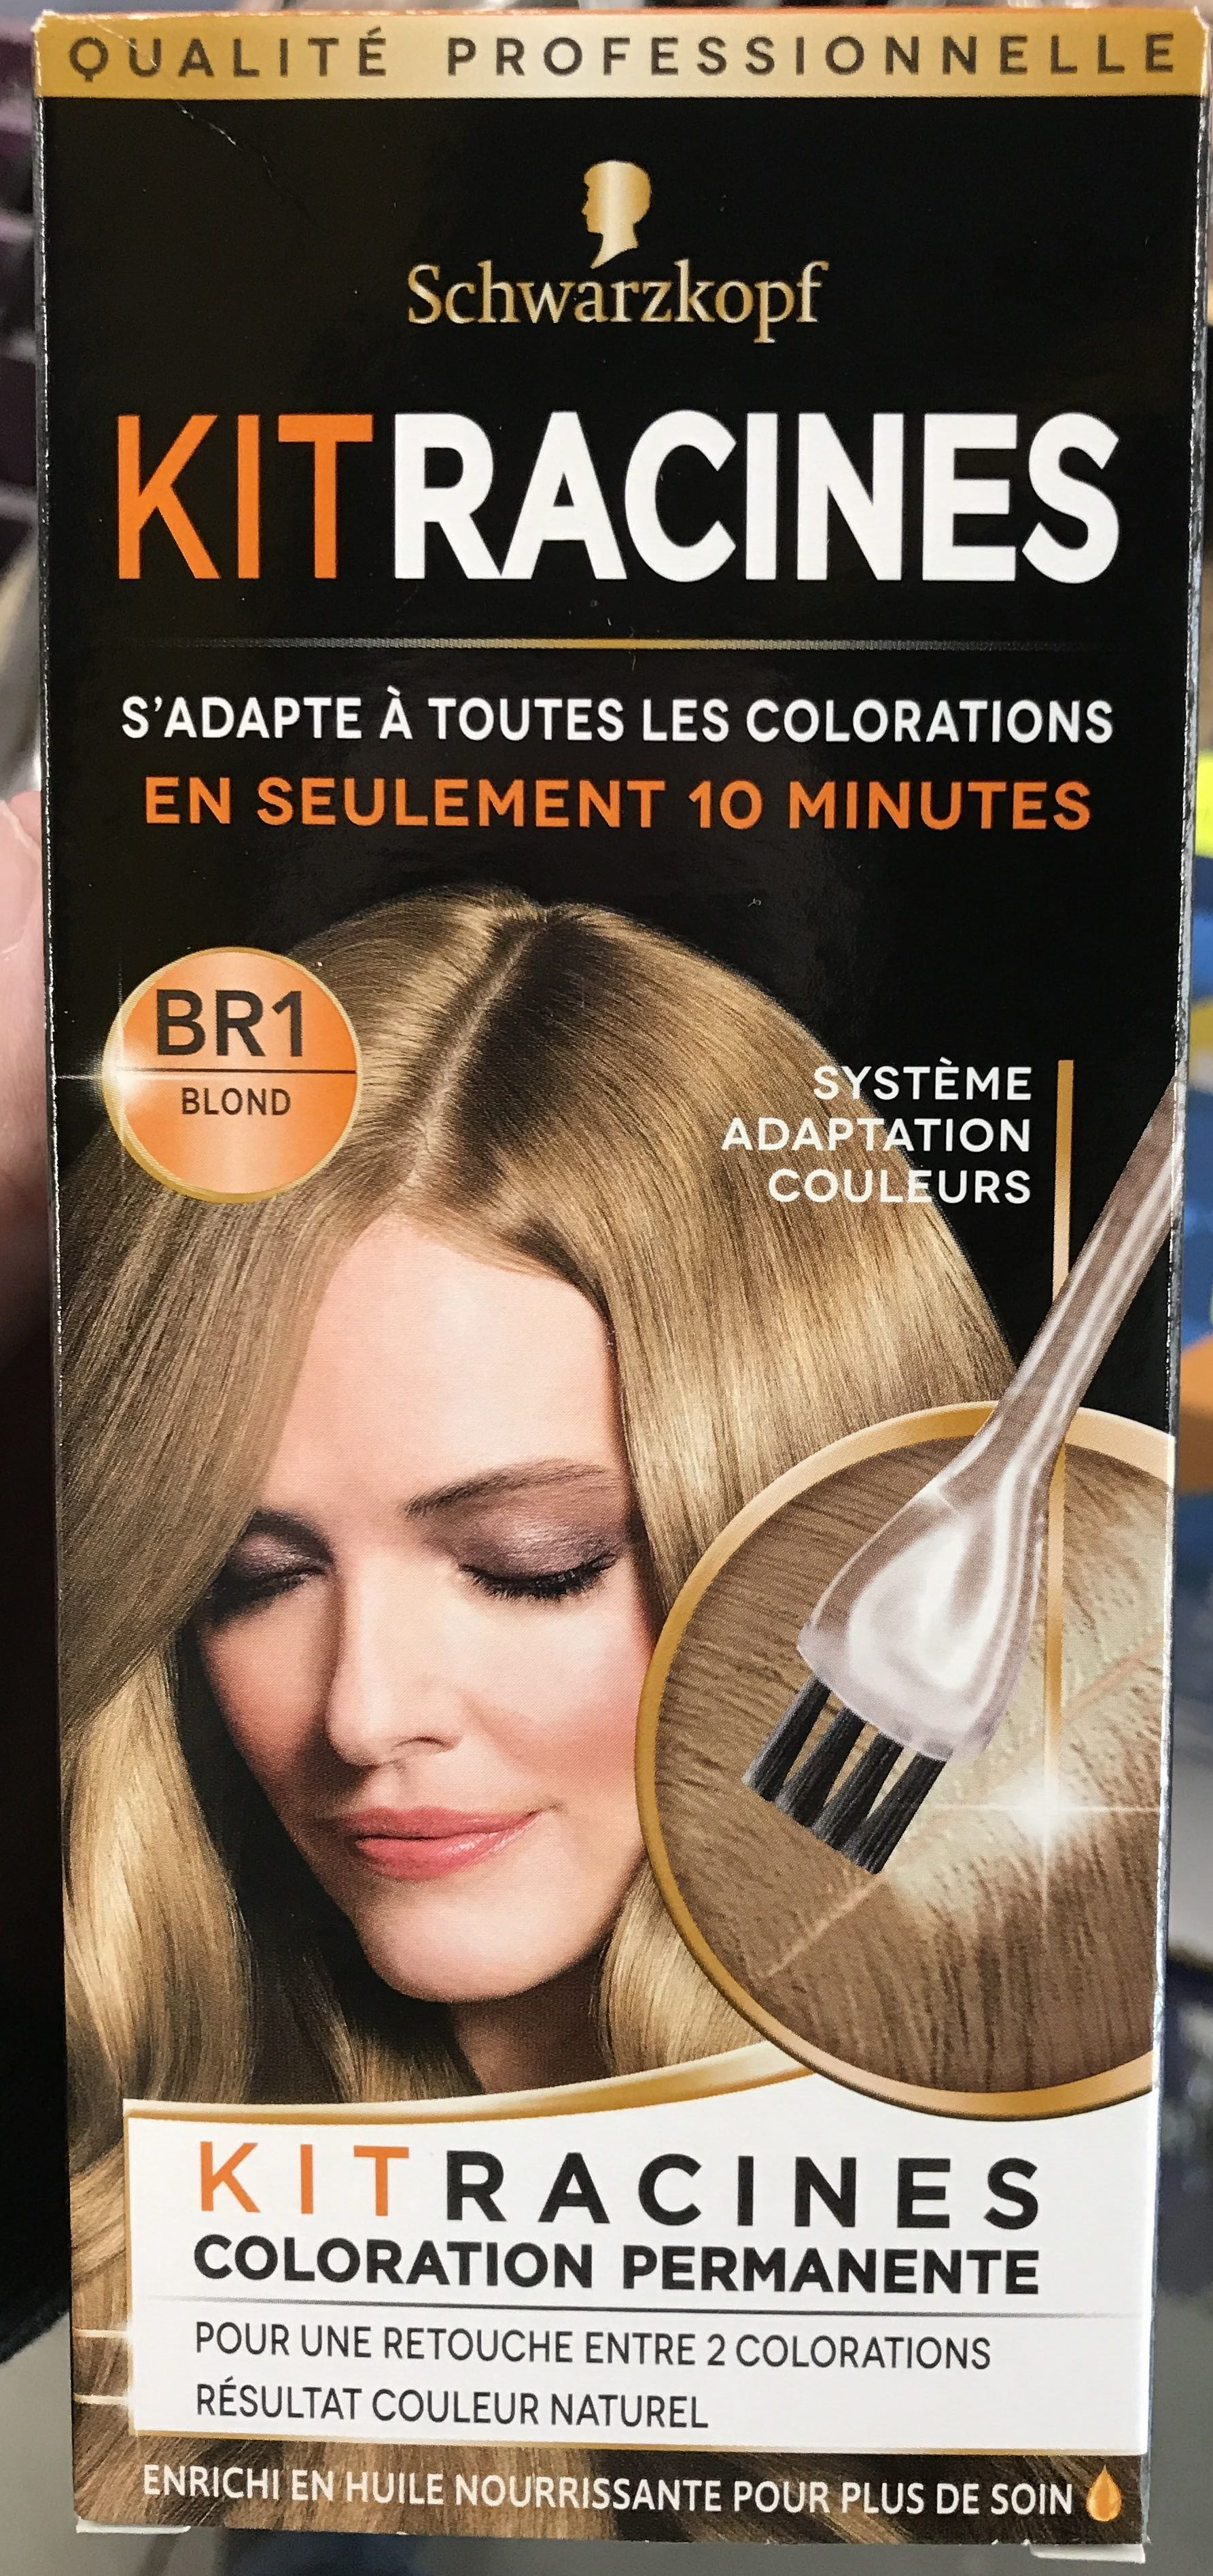 Kit Racines Blond BR1 - Product - fr